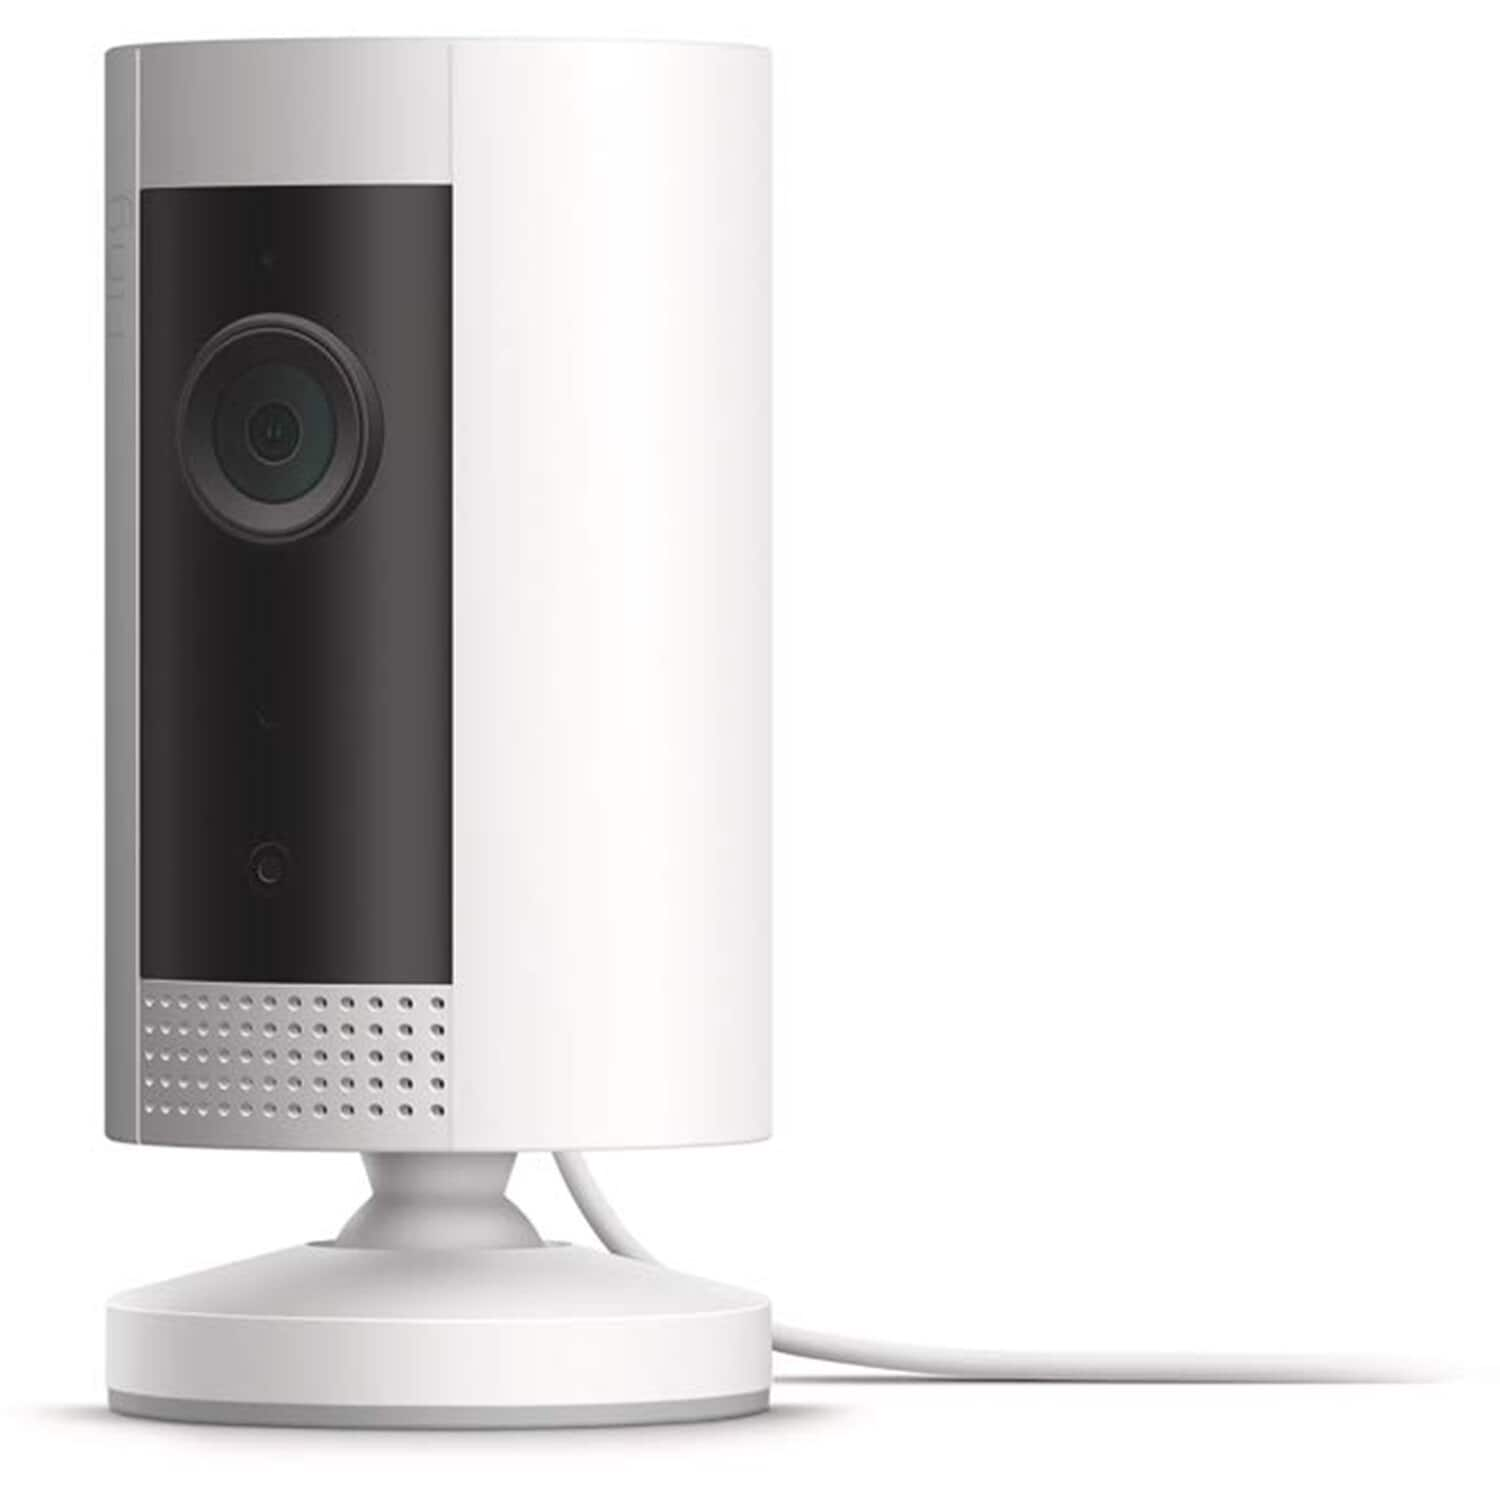 Ring Indoor Cam Plug-in HD Camera - $45.99 After 20% New Customers Coupon + Free Shipping